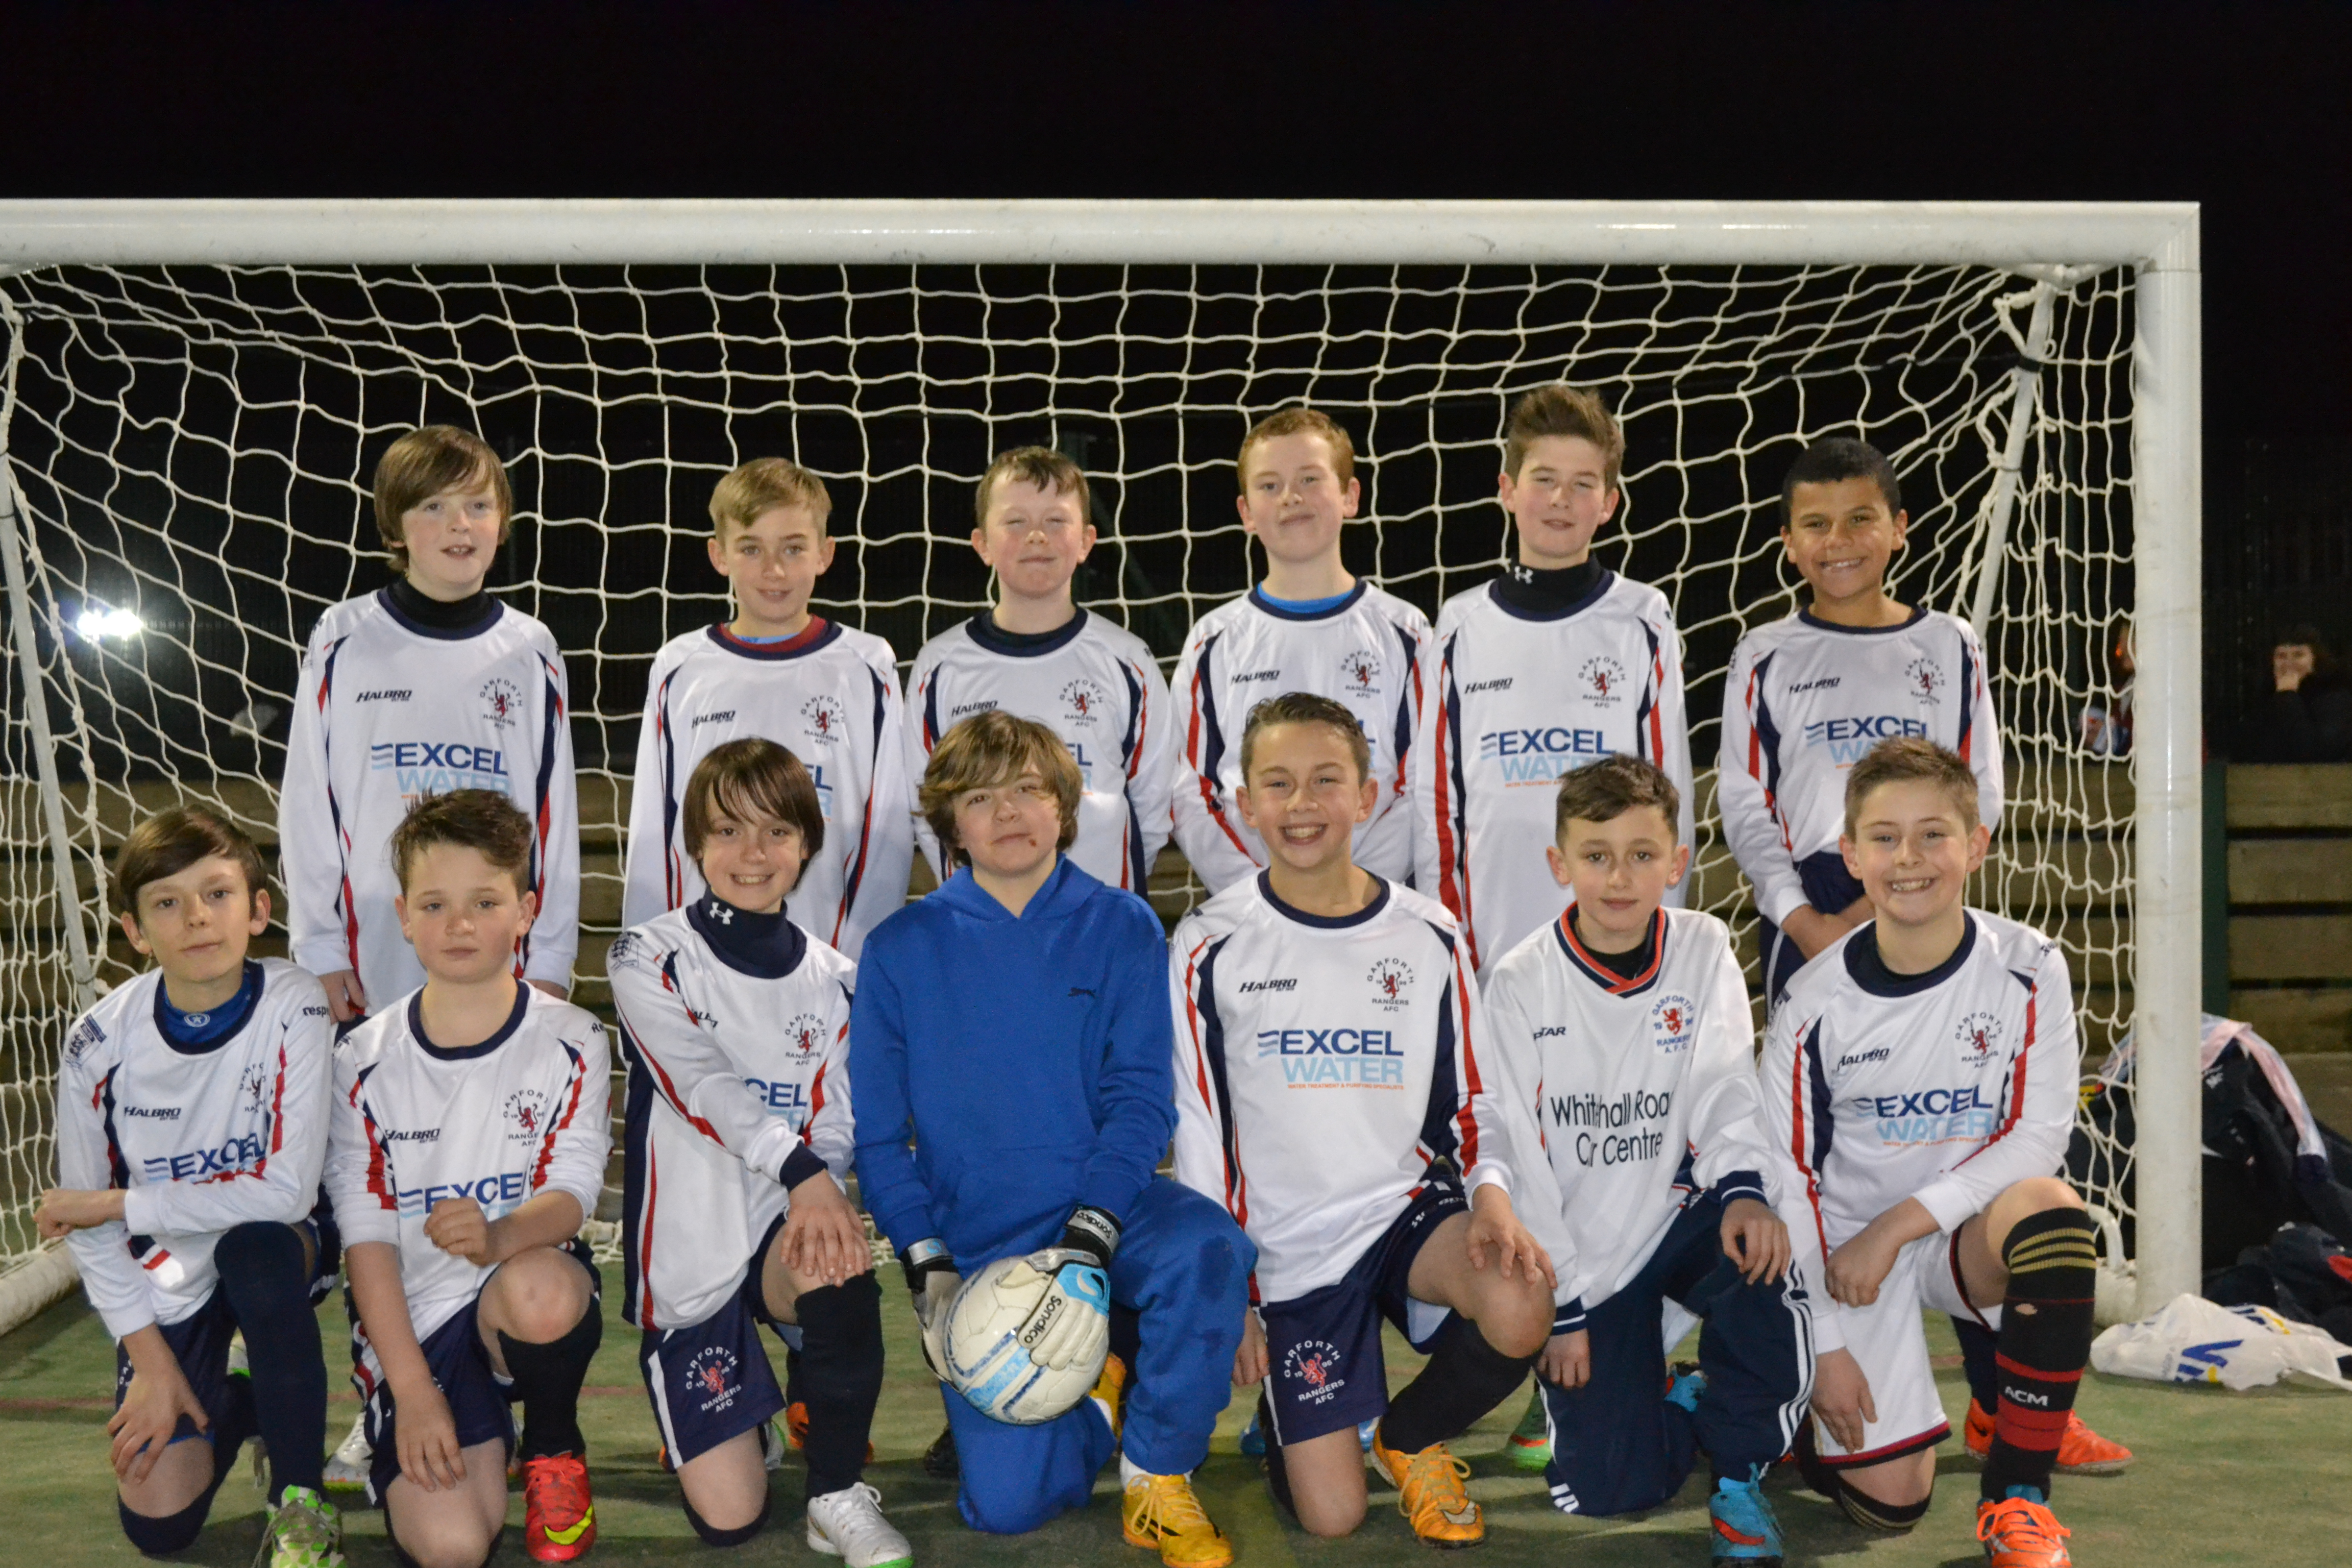 u11s selby